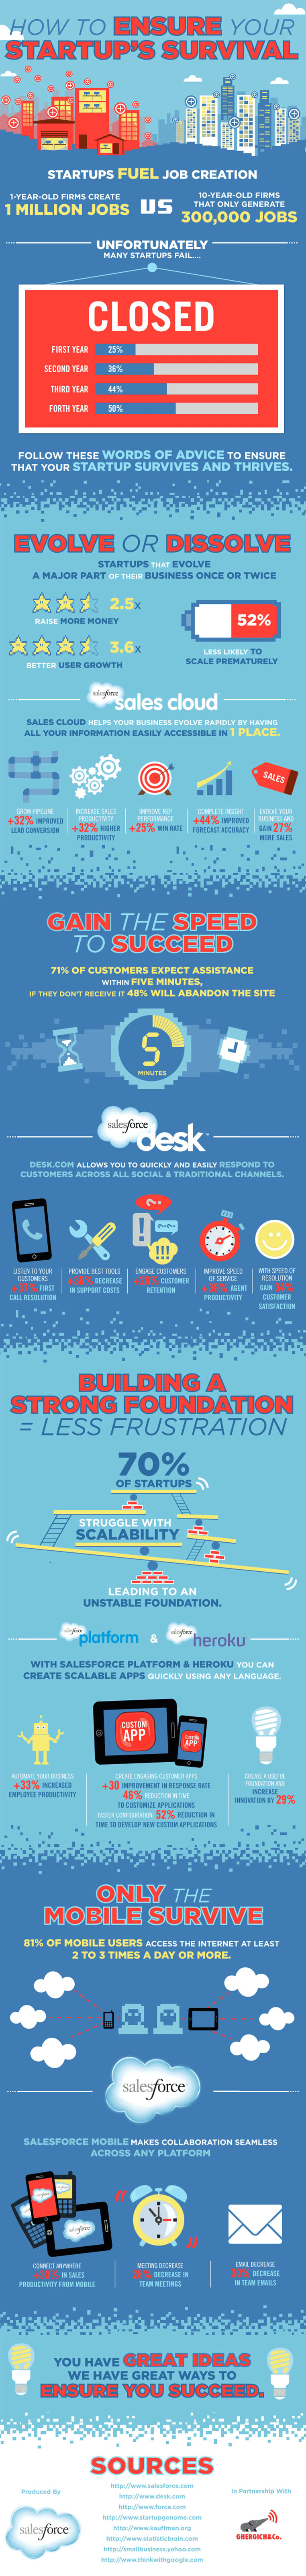 startup survival infographic